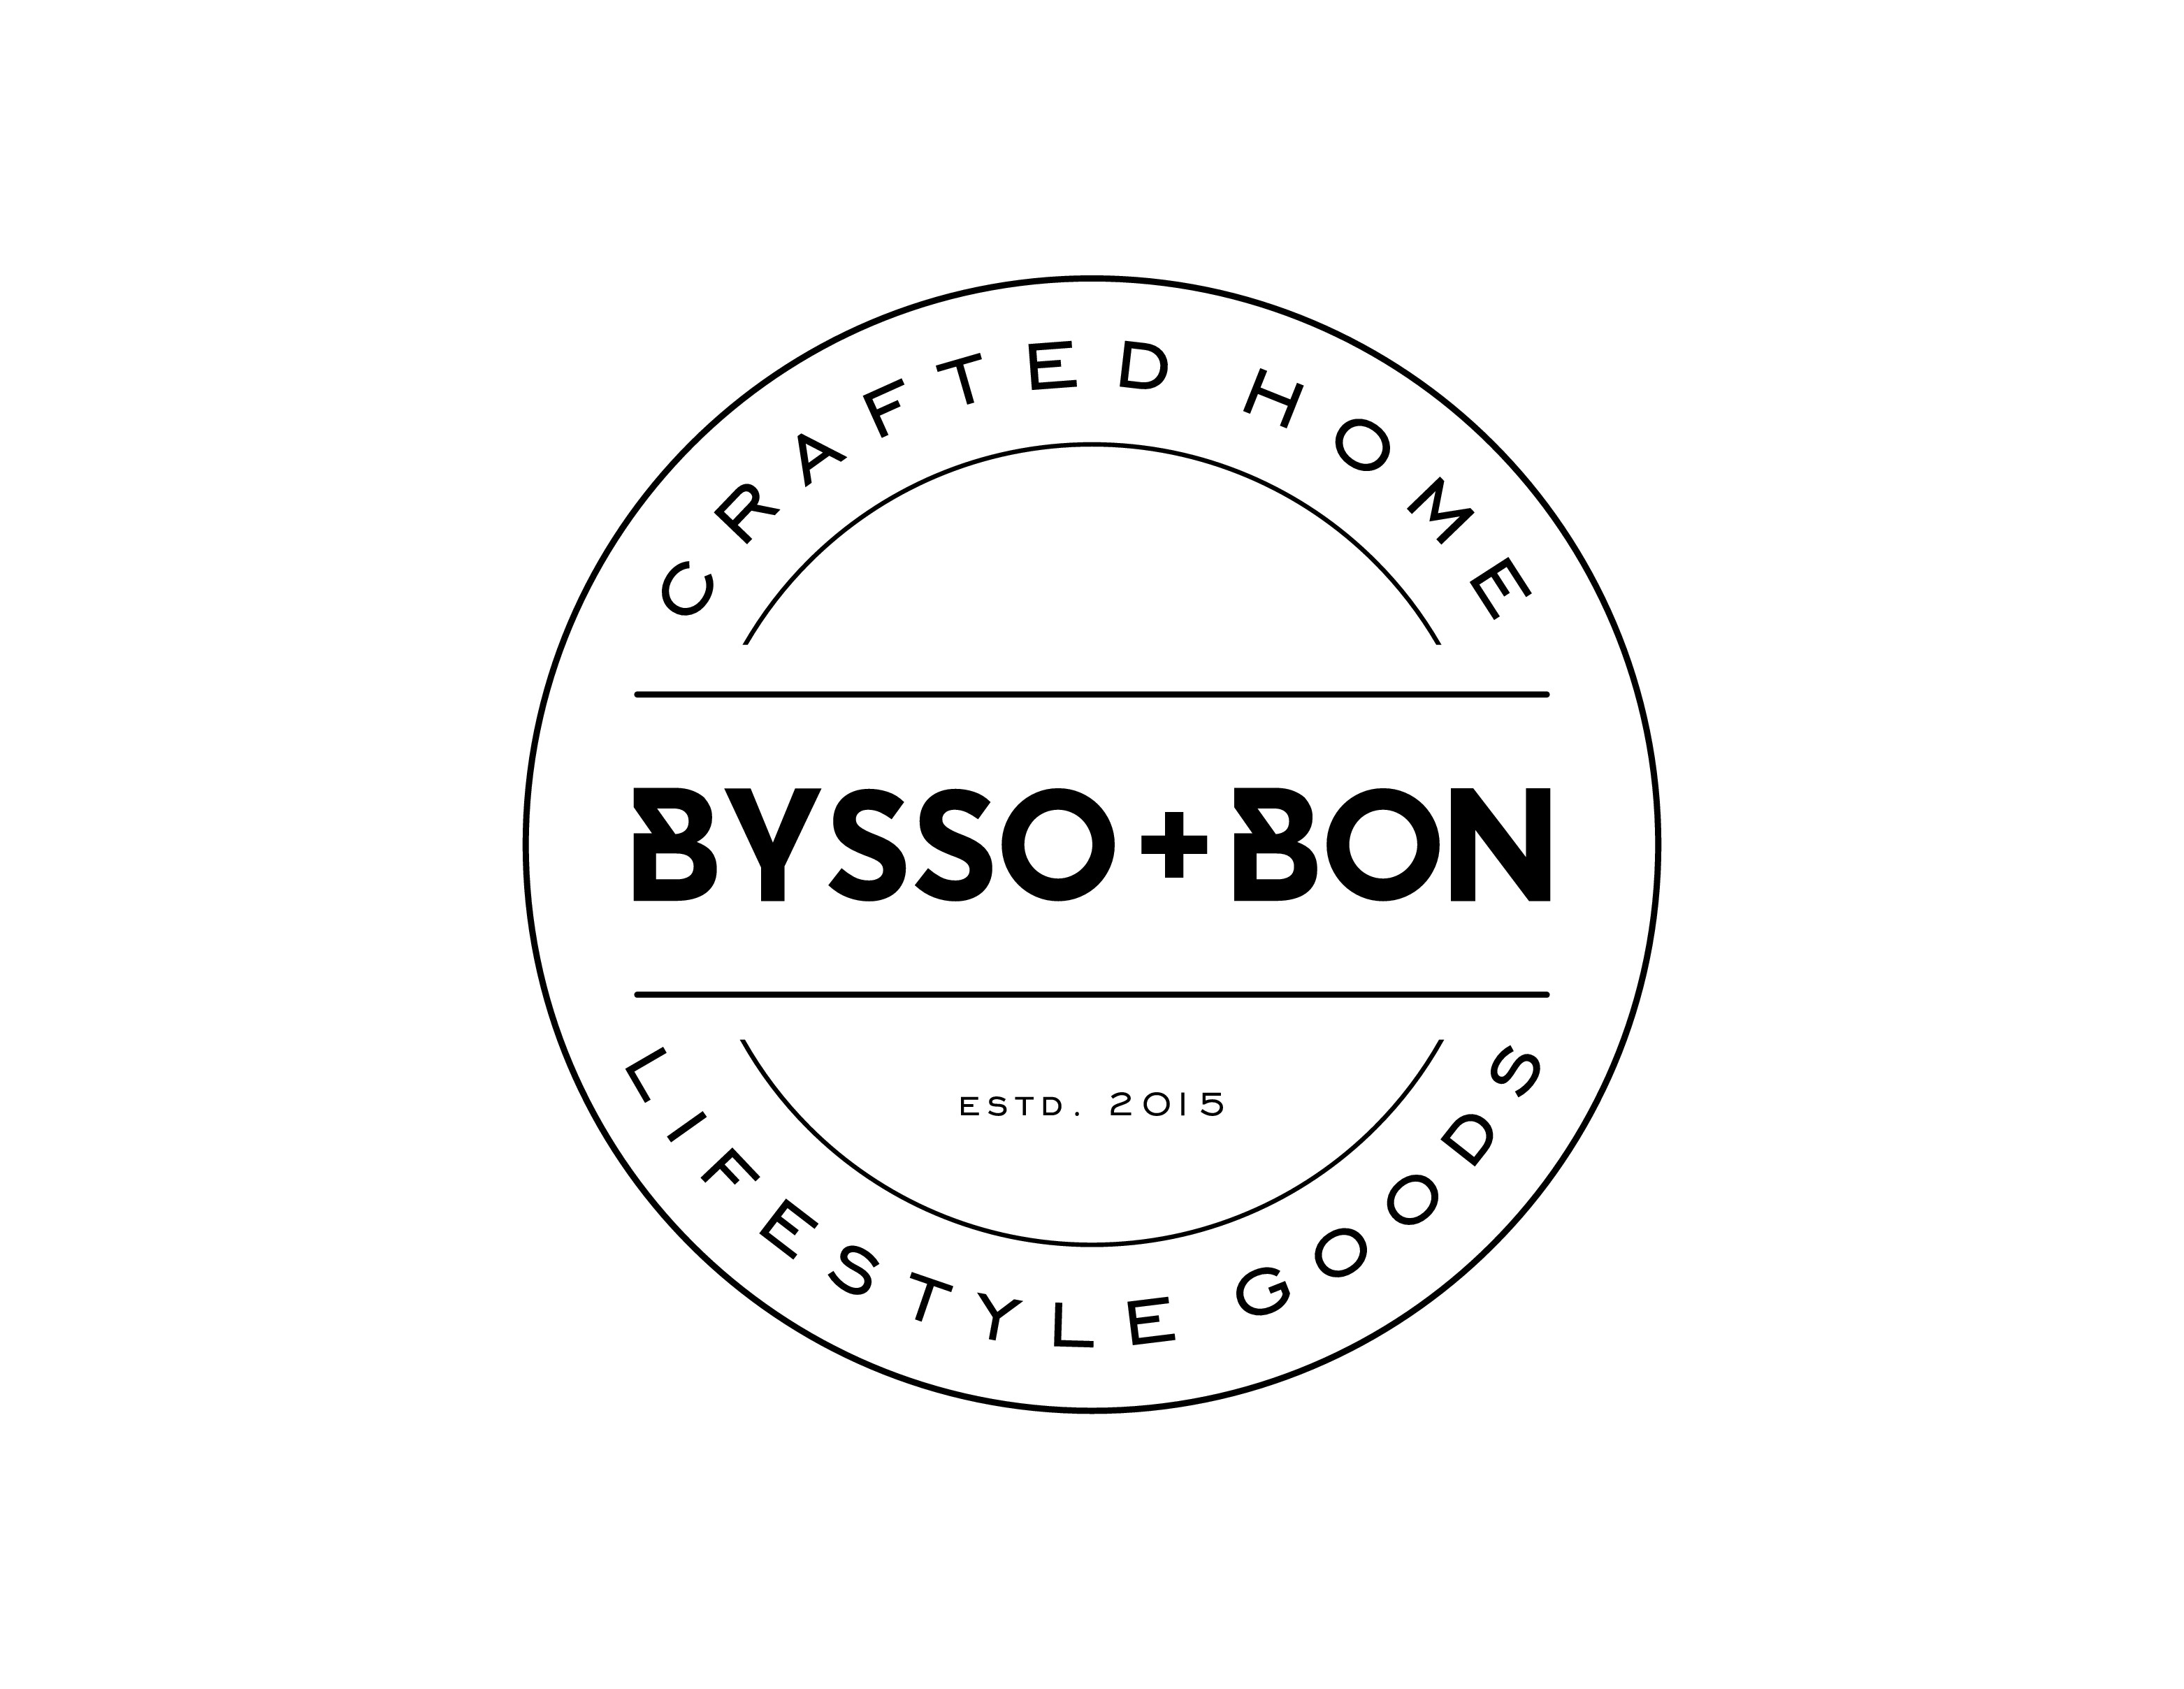 Help create an identity for my new market of curated lifestyle goods